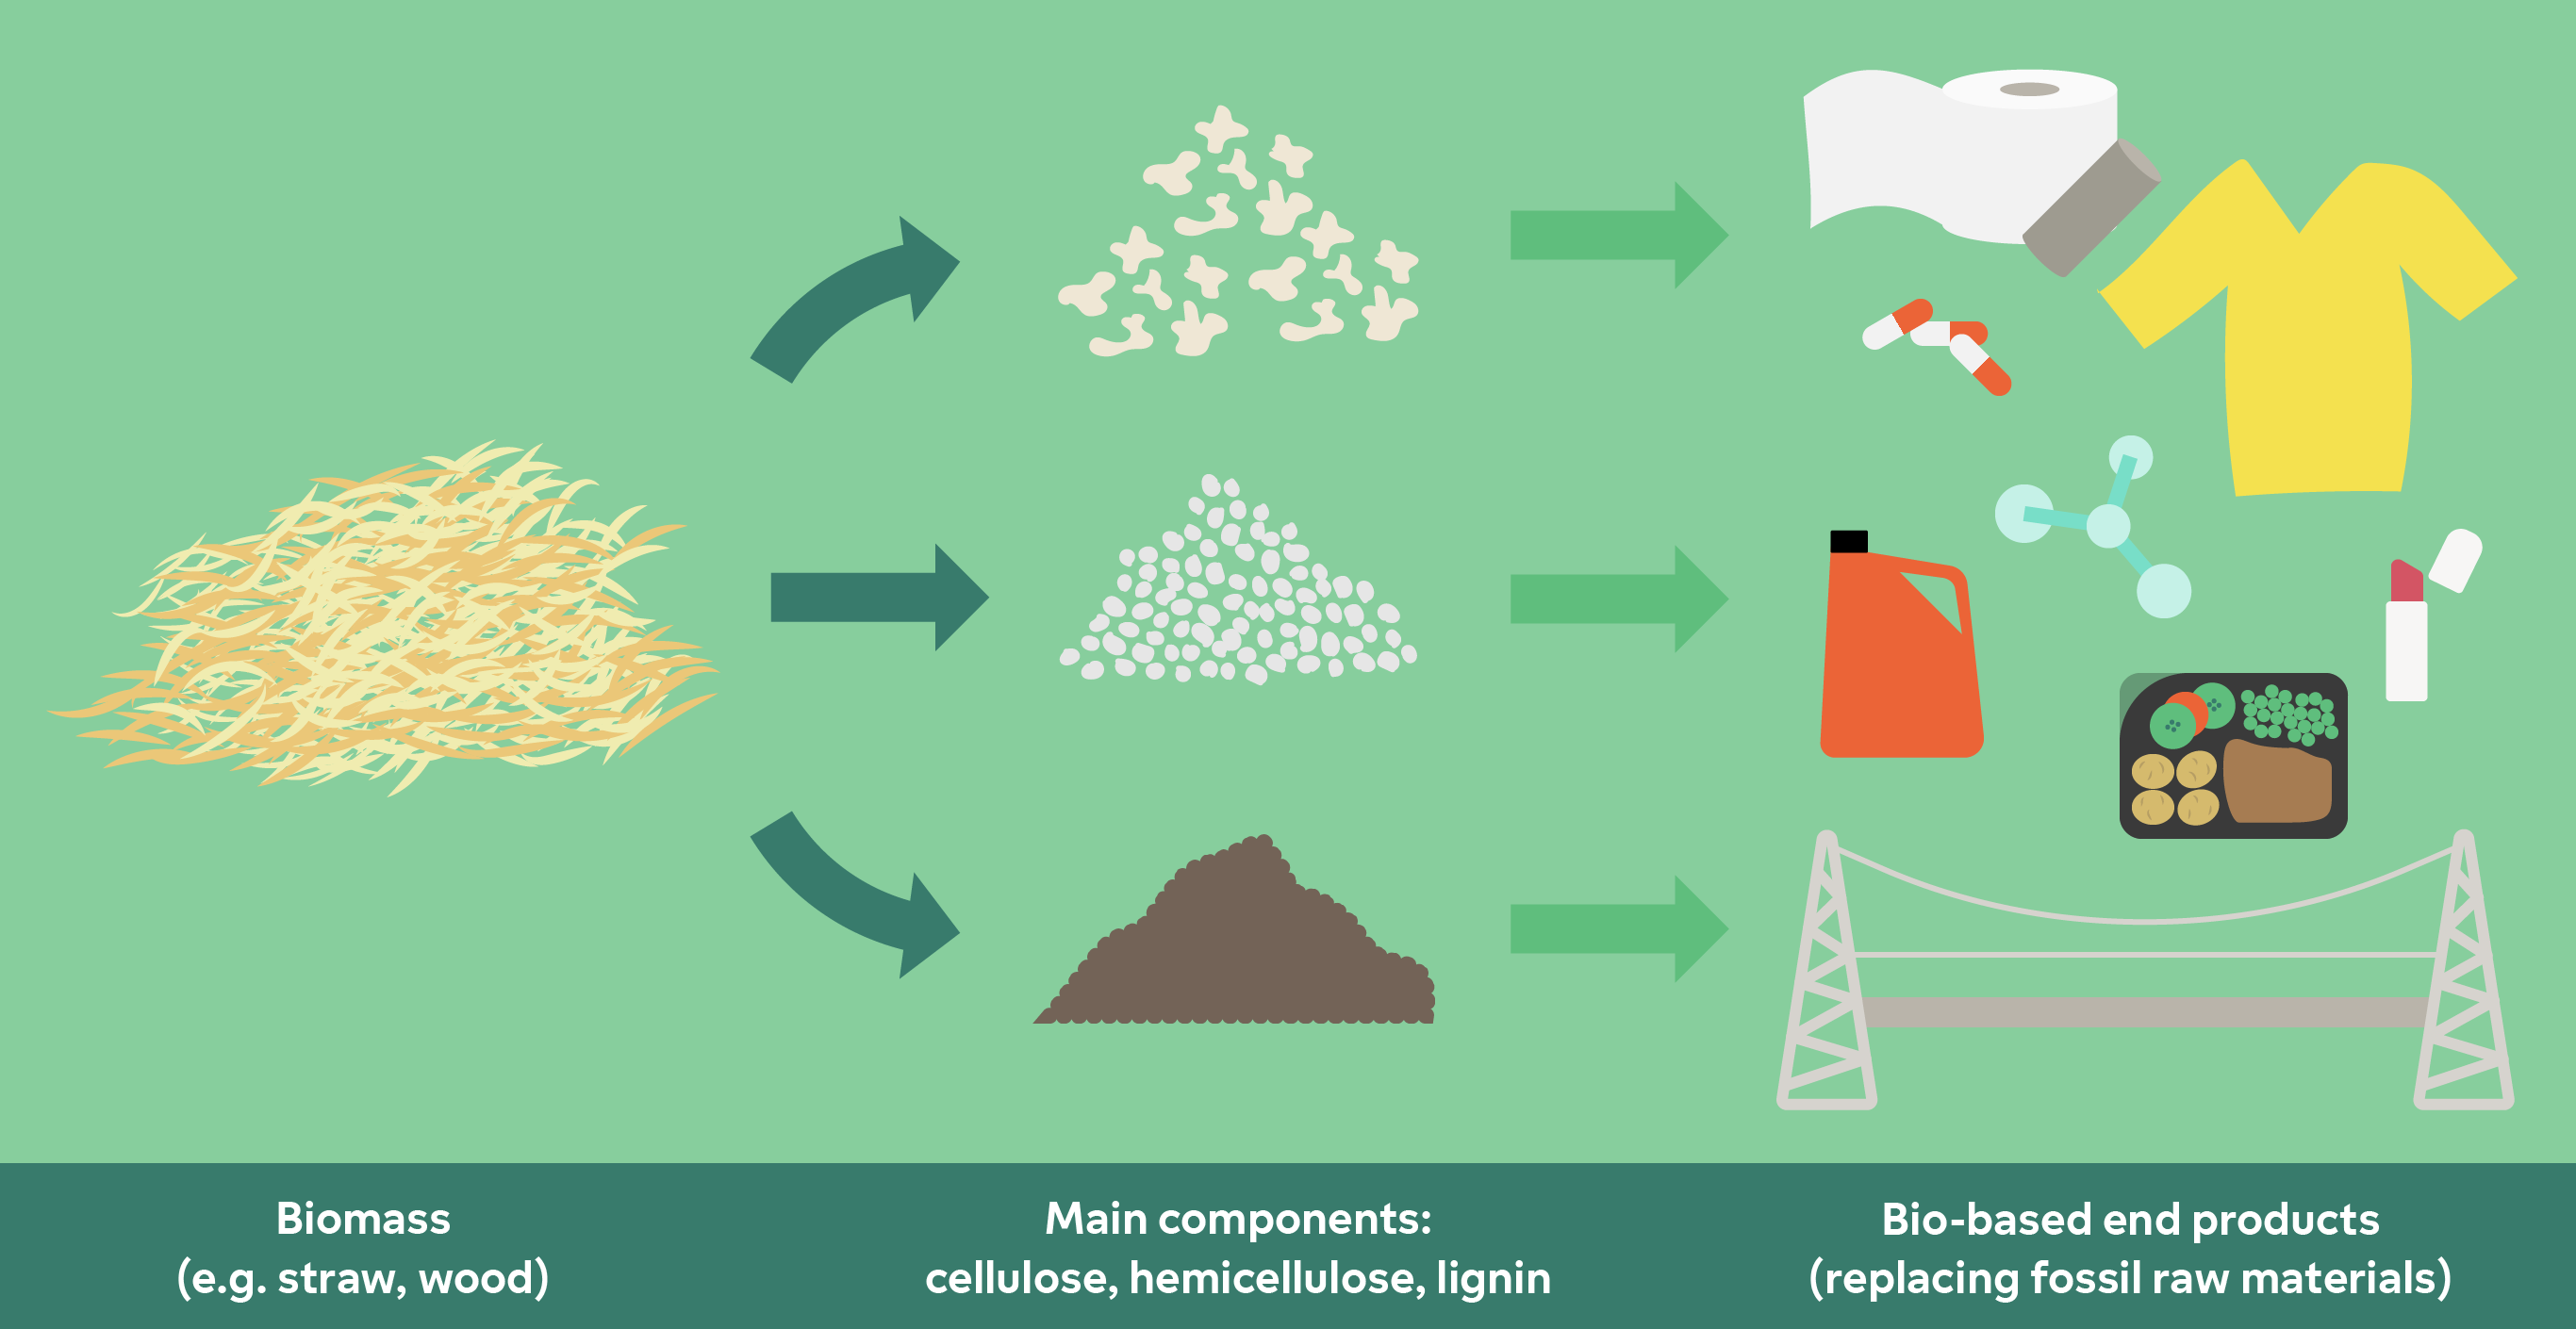 Biomass consists of three main components: cellulose, hemicellulose and lignine. They can be developed to new products.